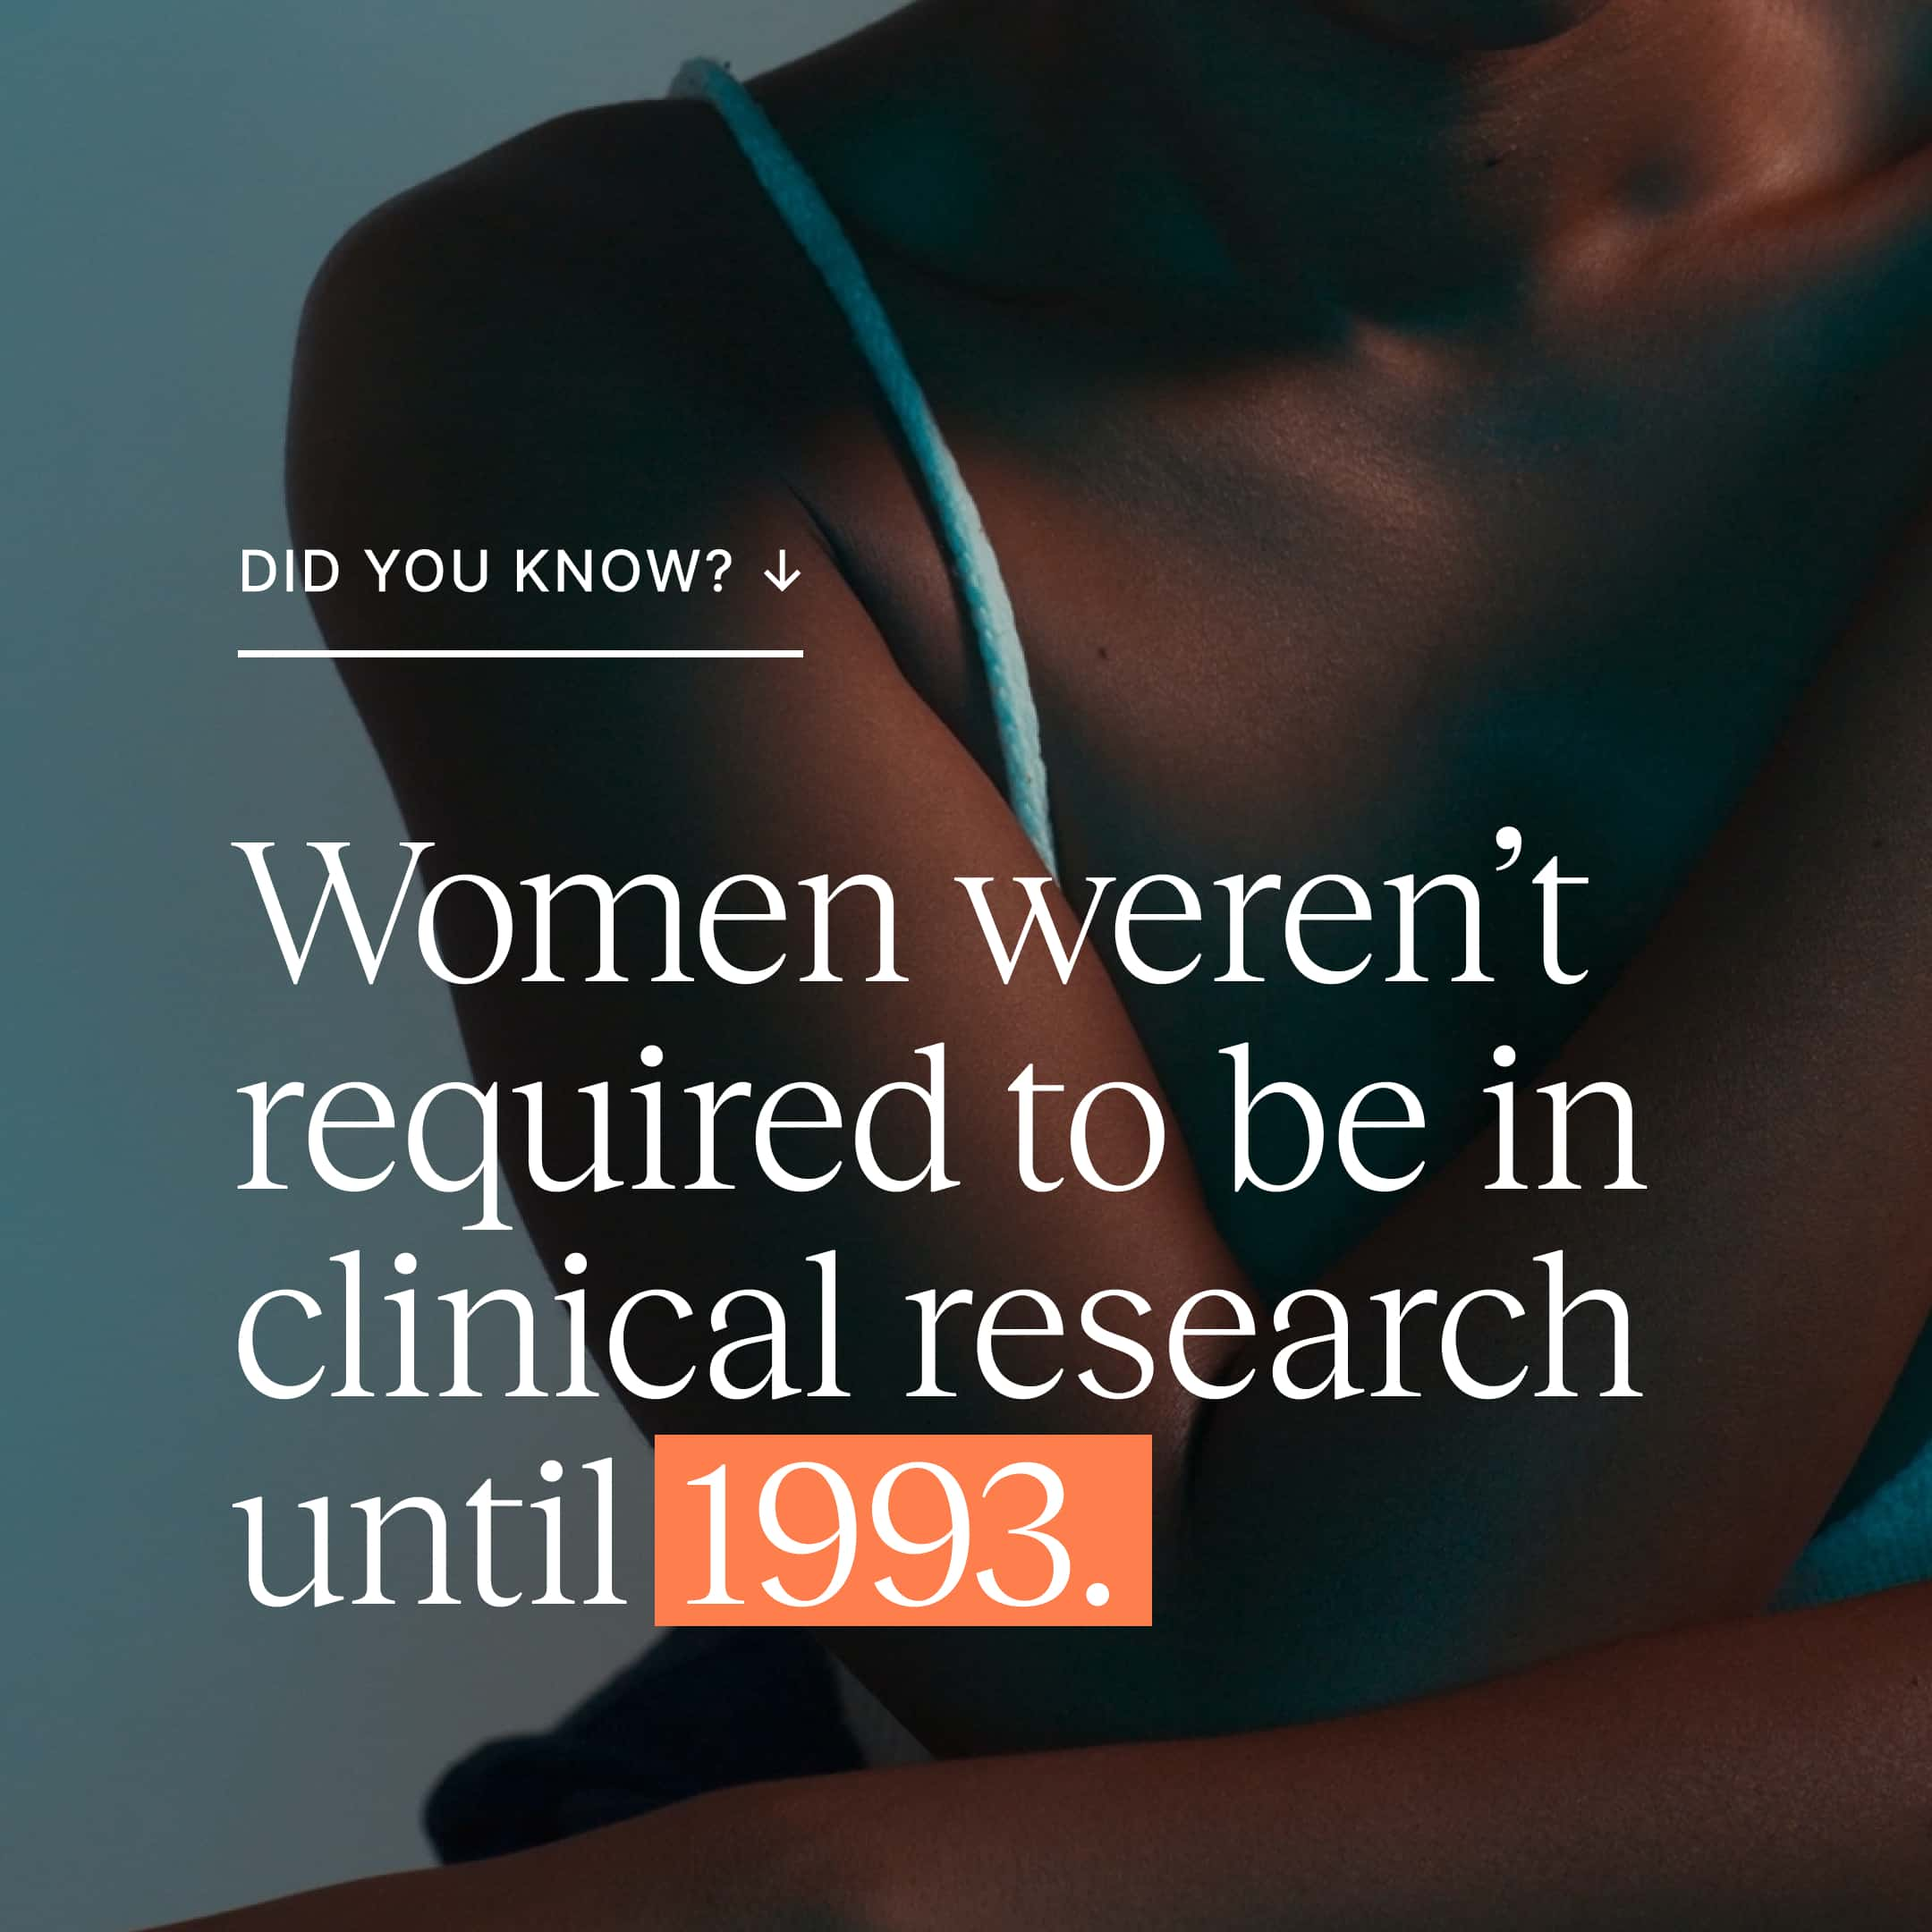 Did you know? Women weren't required to be in clinical research until 1993